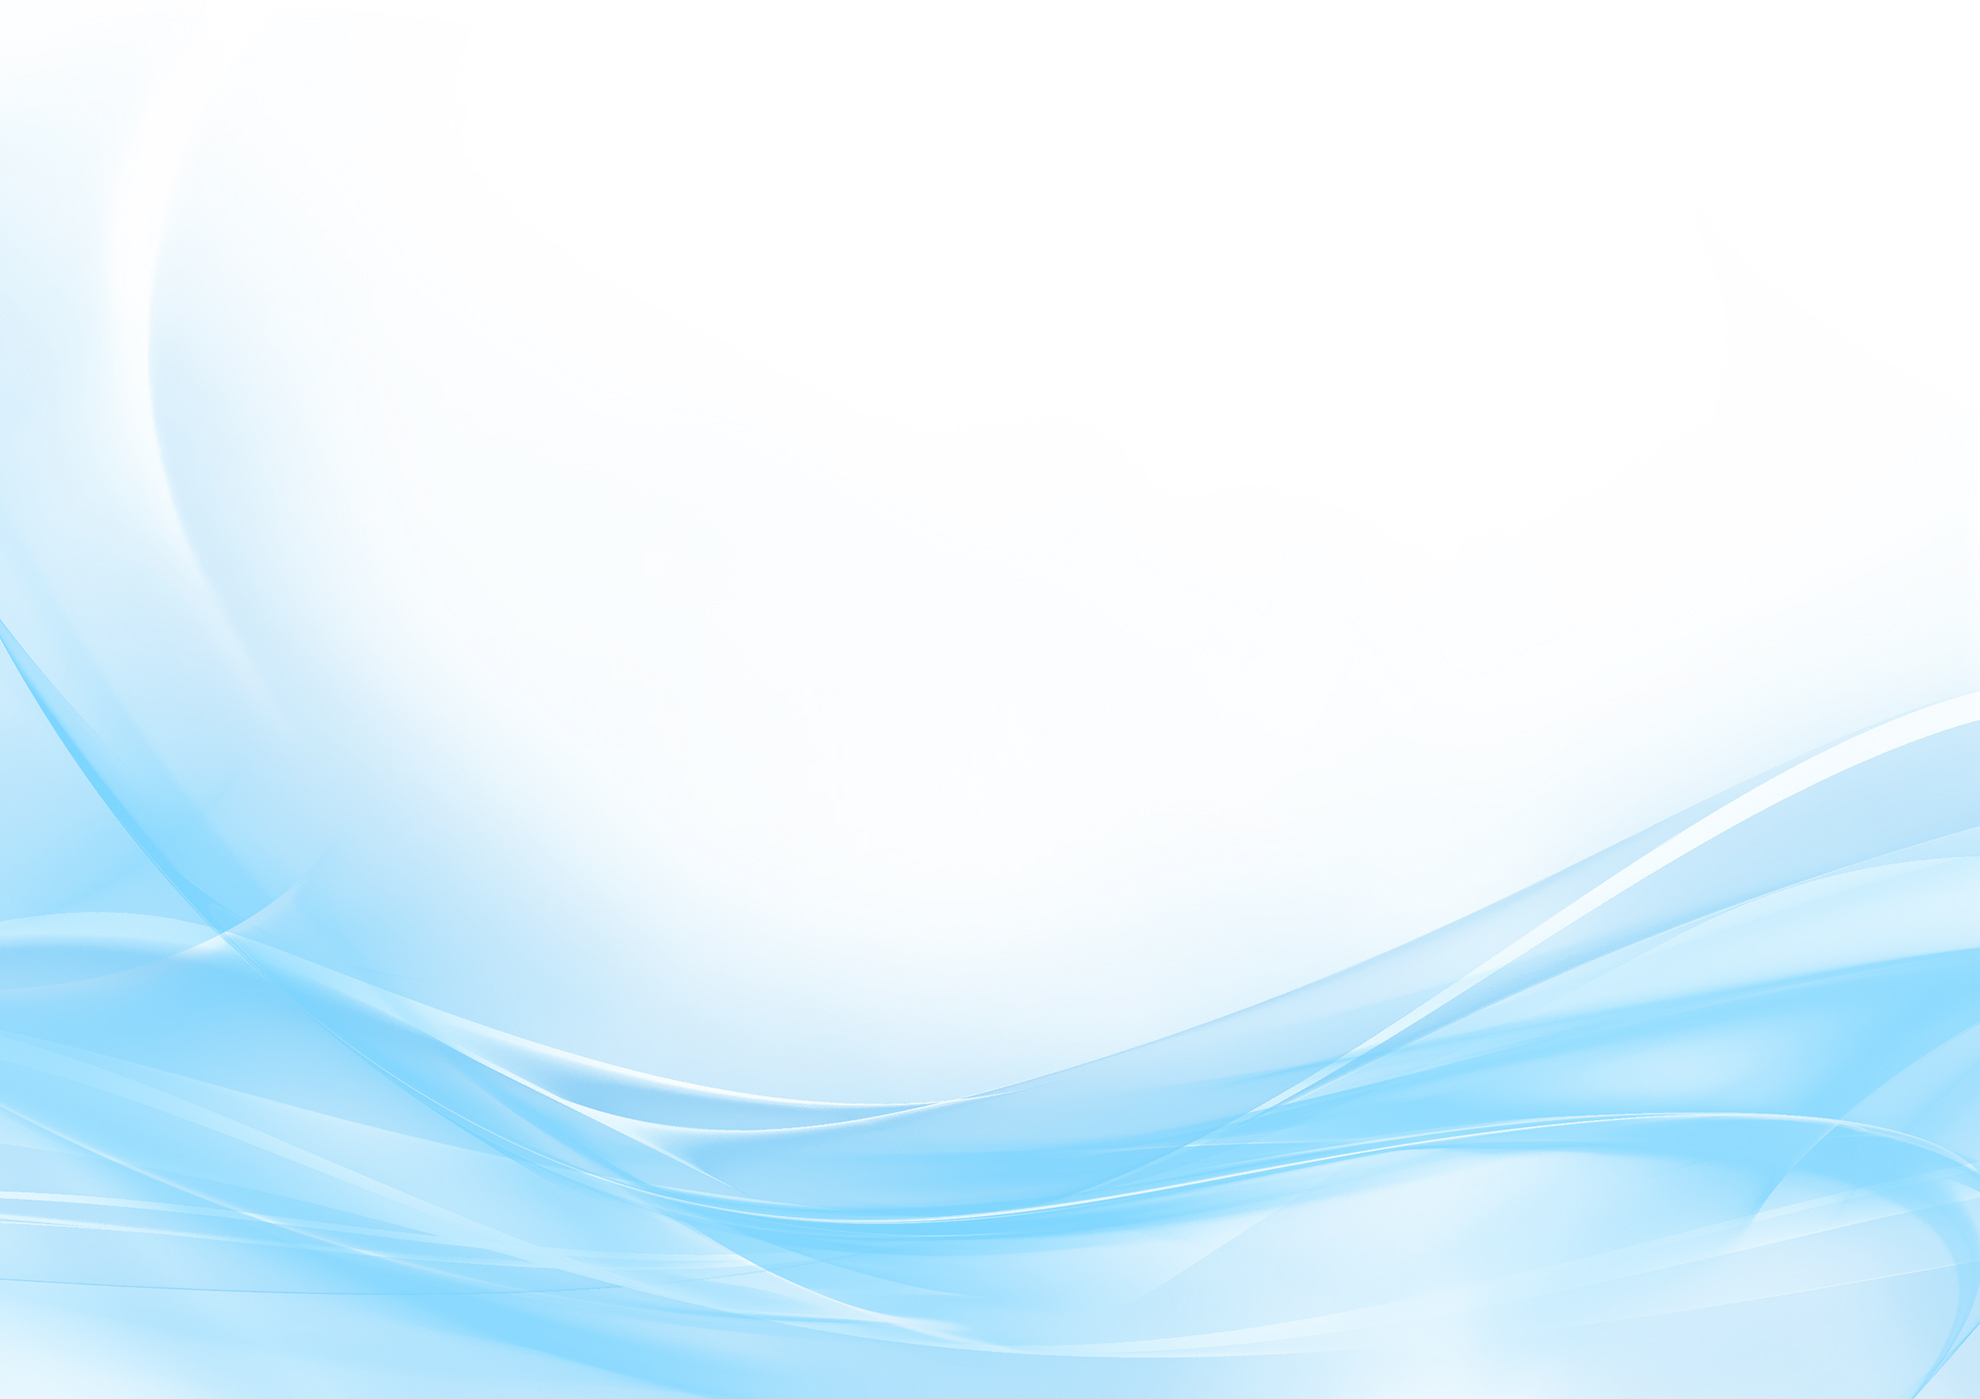 abstract pastel blue and white background � secureitworld